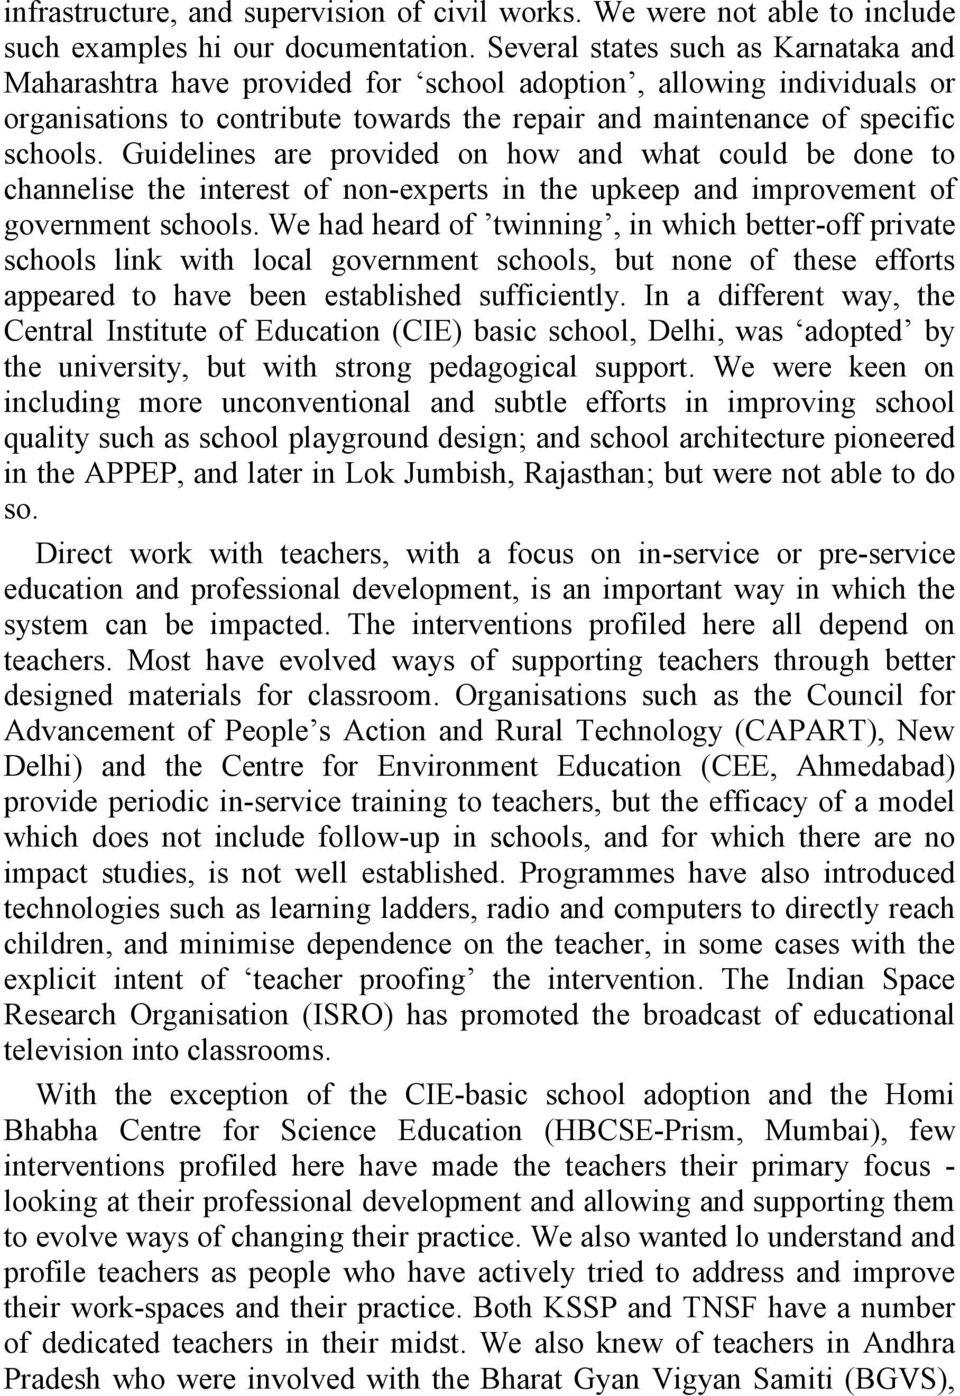 Guidelines are provided on how and what could be done to channelise the interest of non-experts in the upkeep and improvement of government schools.